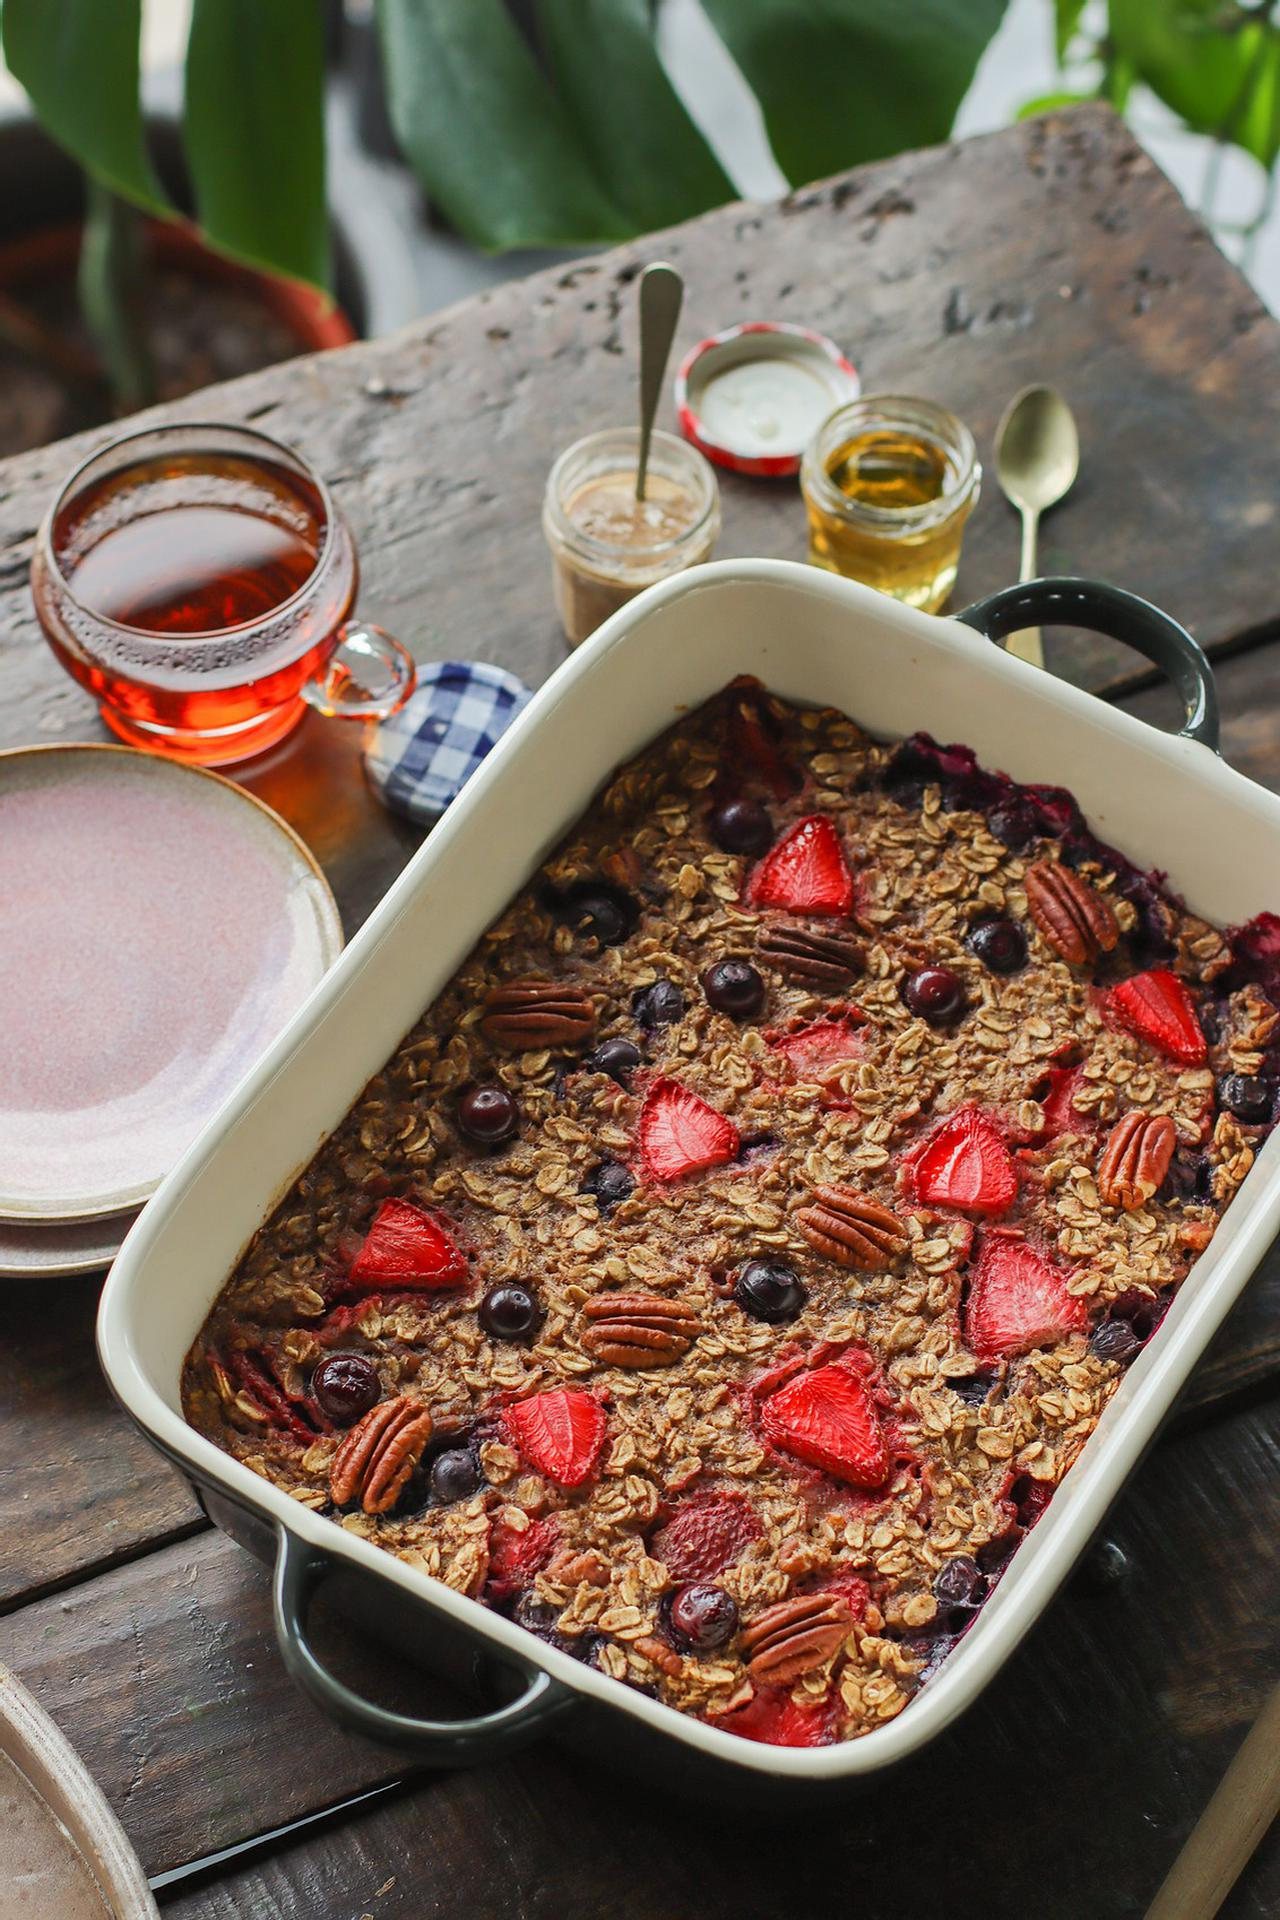 Main image of Baked Berry & Pecan Oatmeal